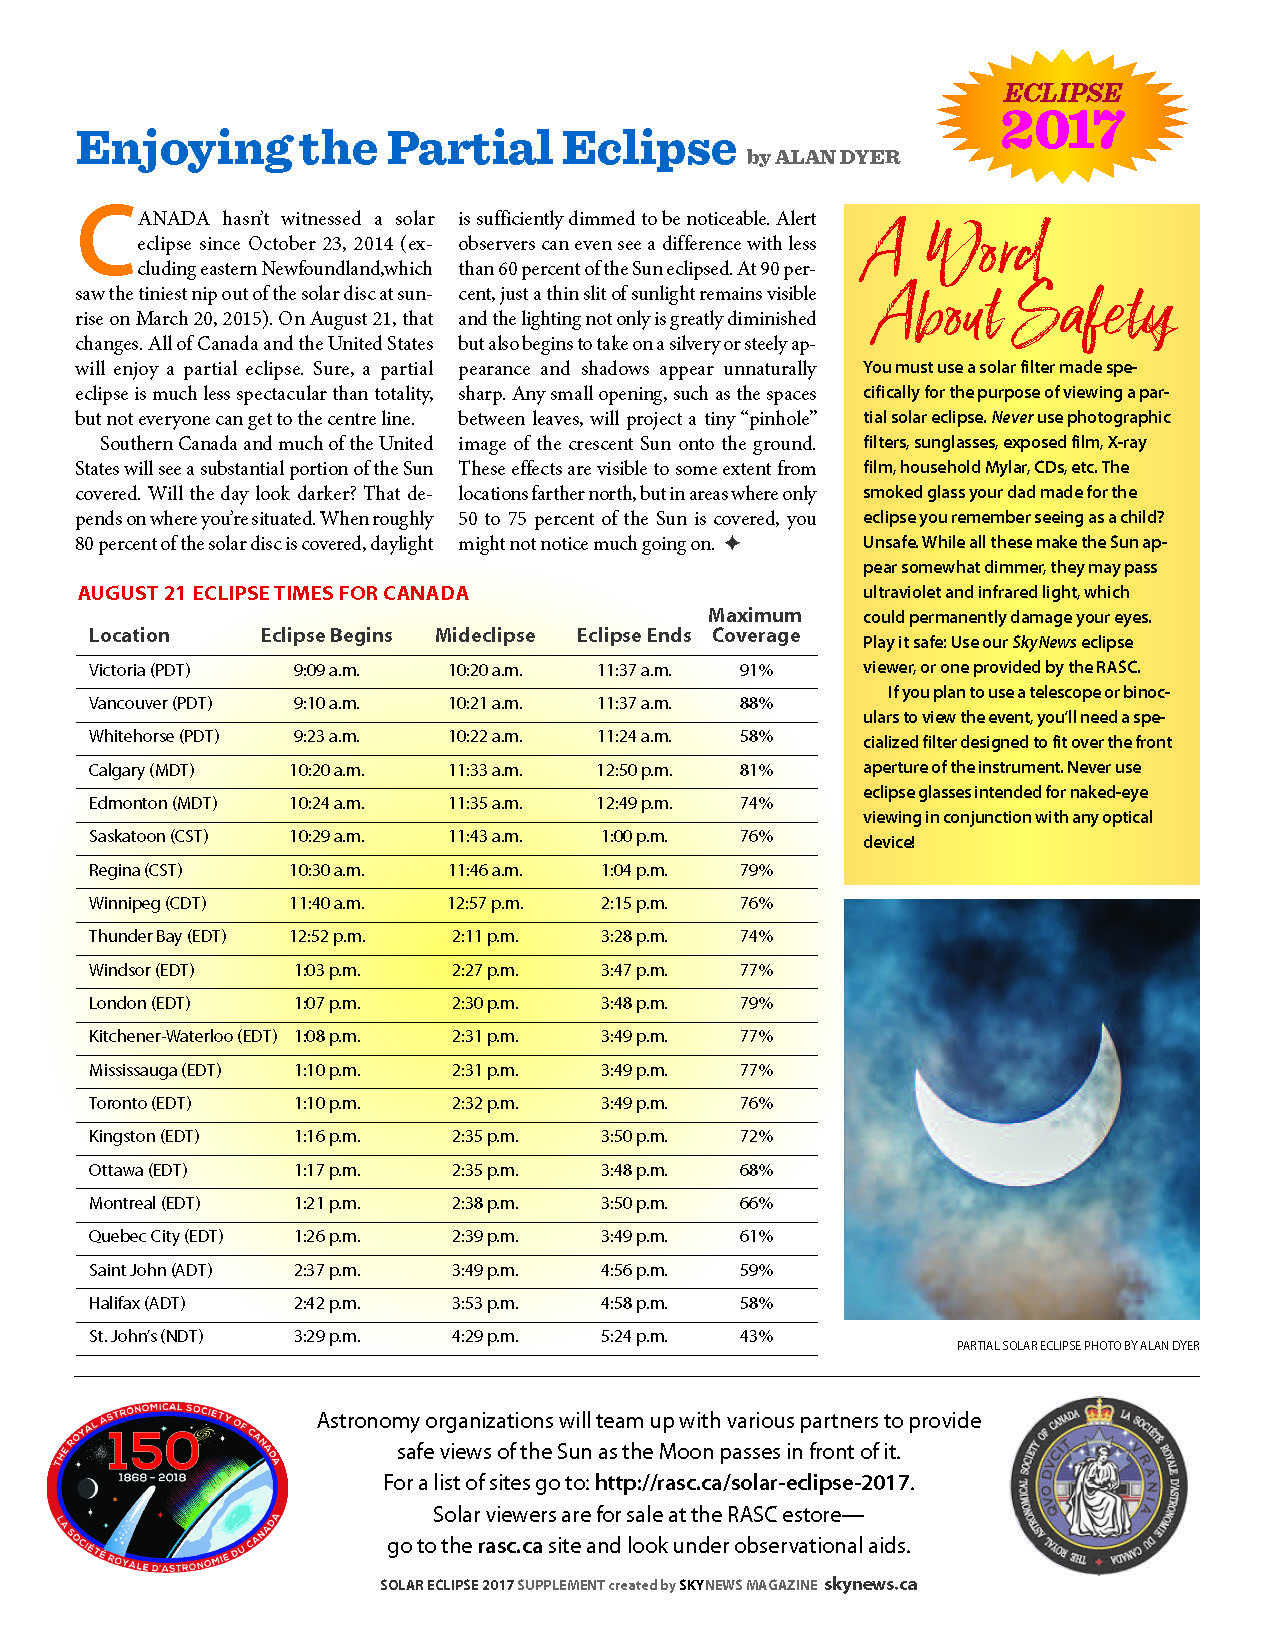 solar eclipse guide page 2